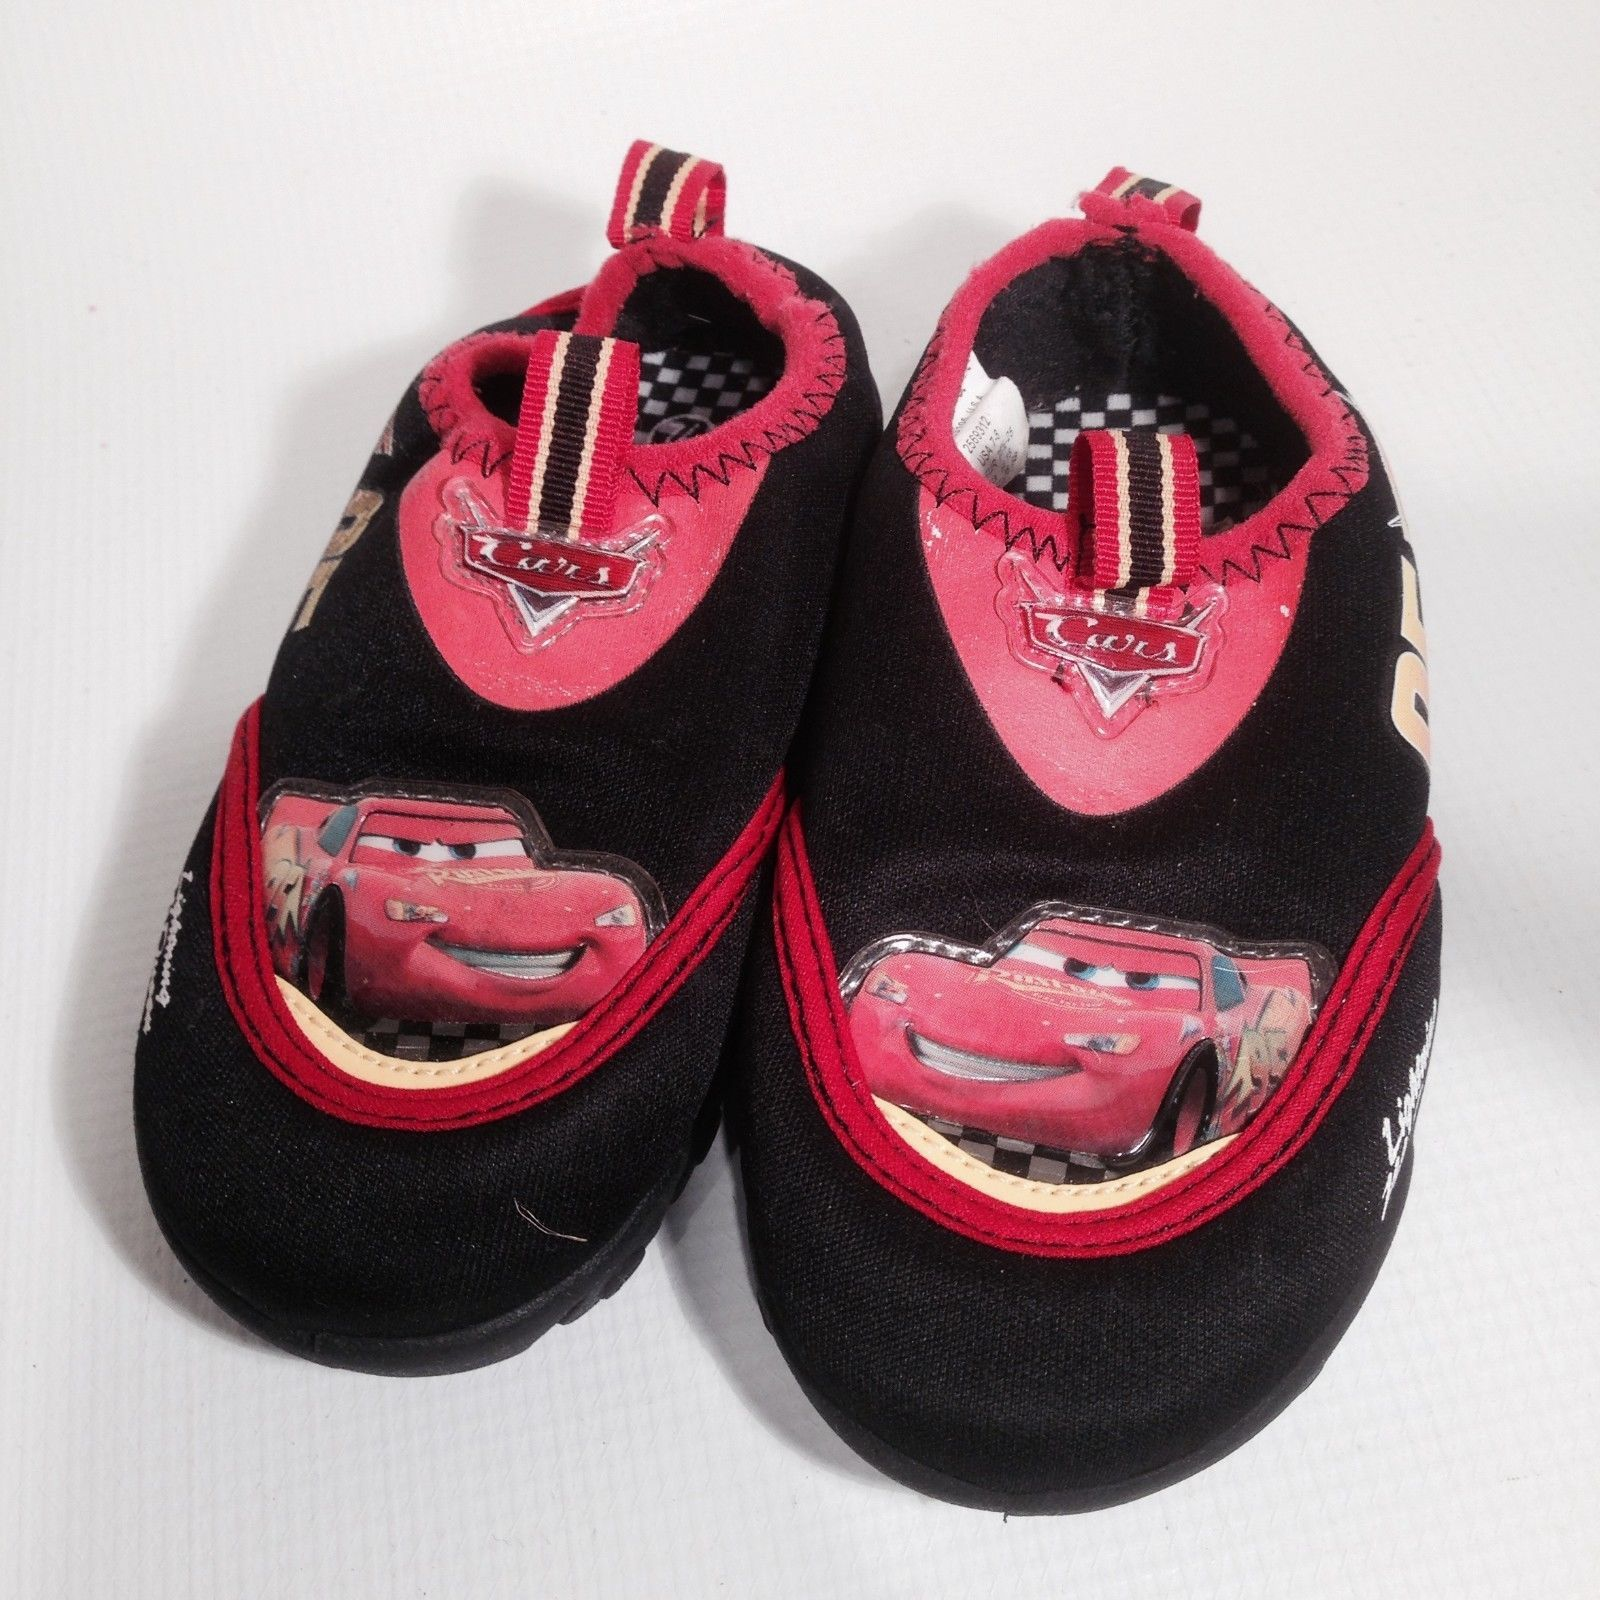 Buster Brown Shoes 9 listings